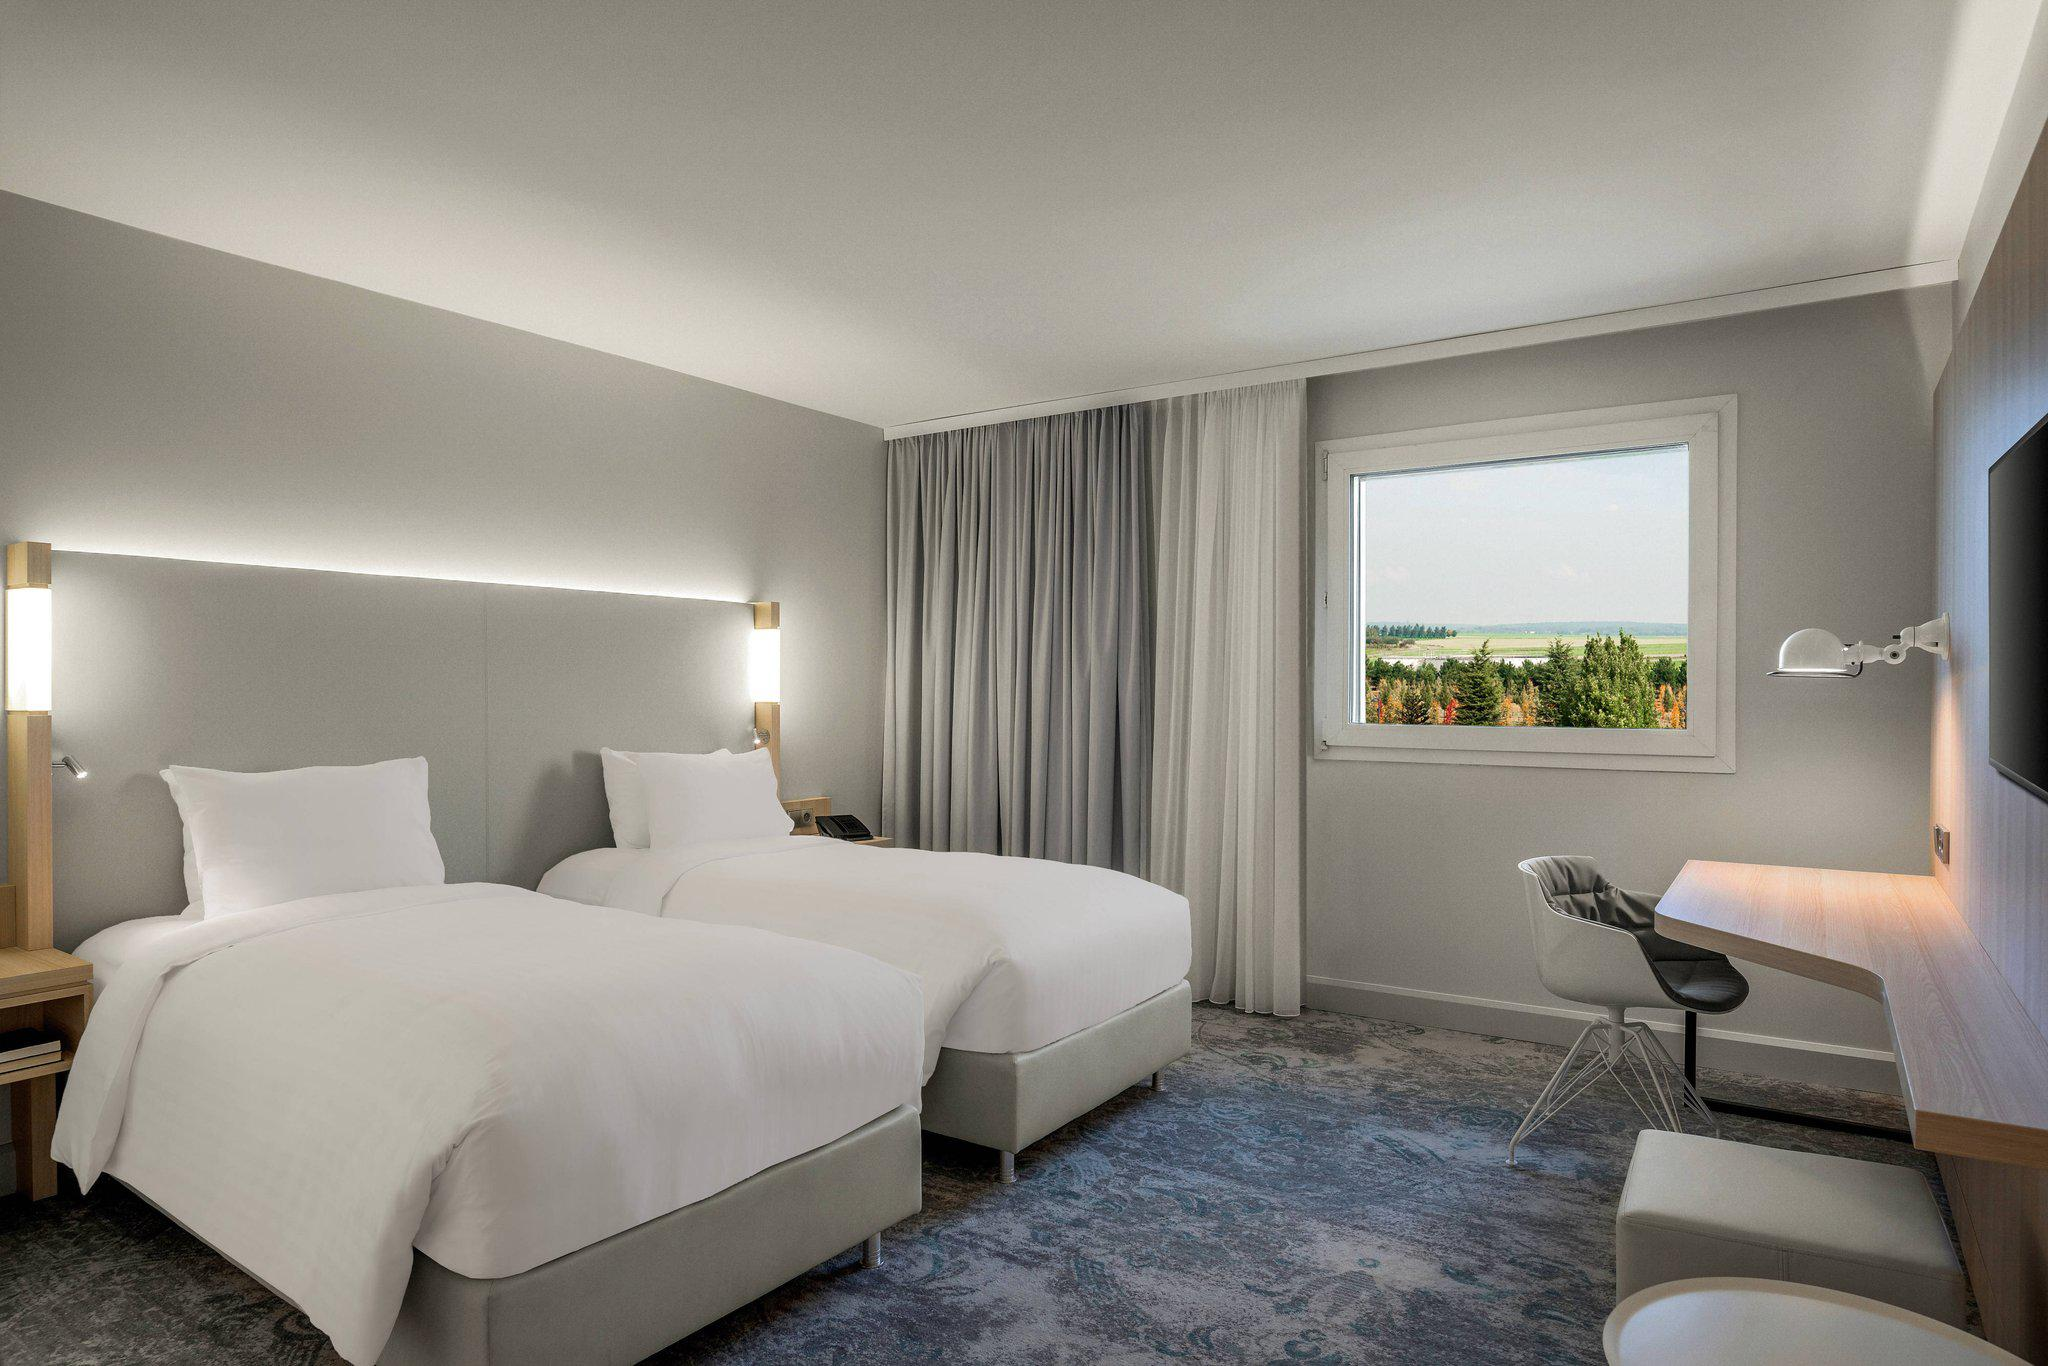 Courtyard by Marriott Paris Roissy Charles de Gaulle Airport Hotel